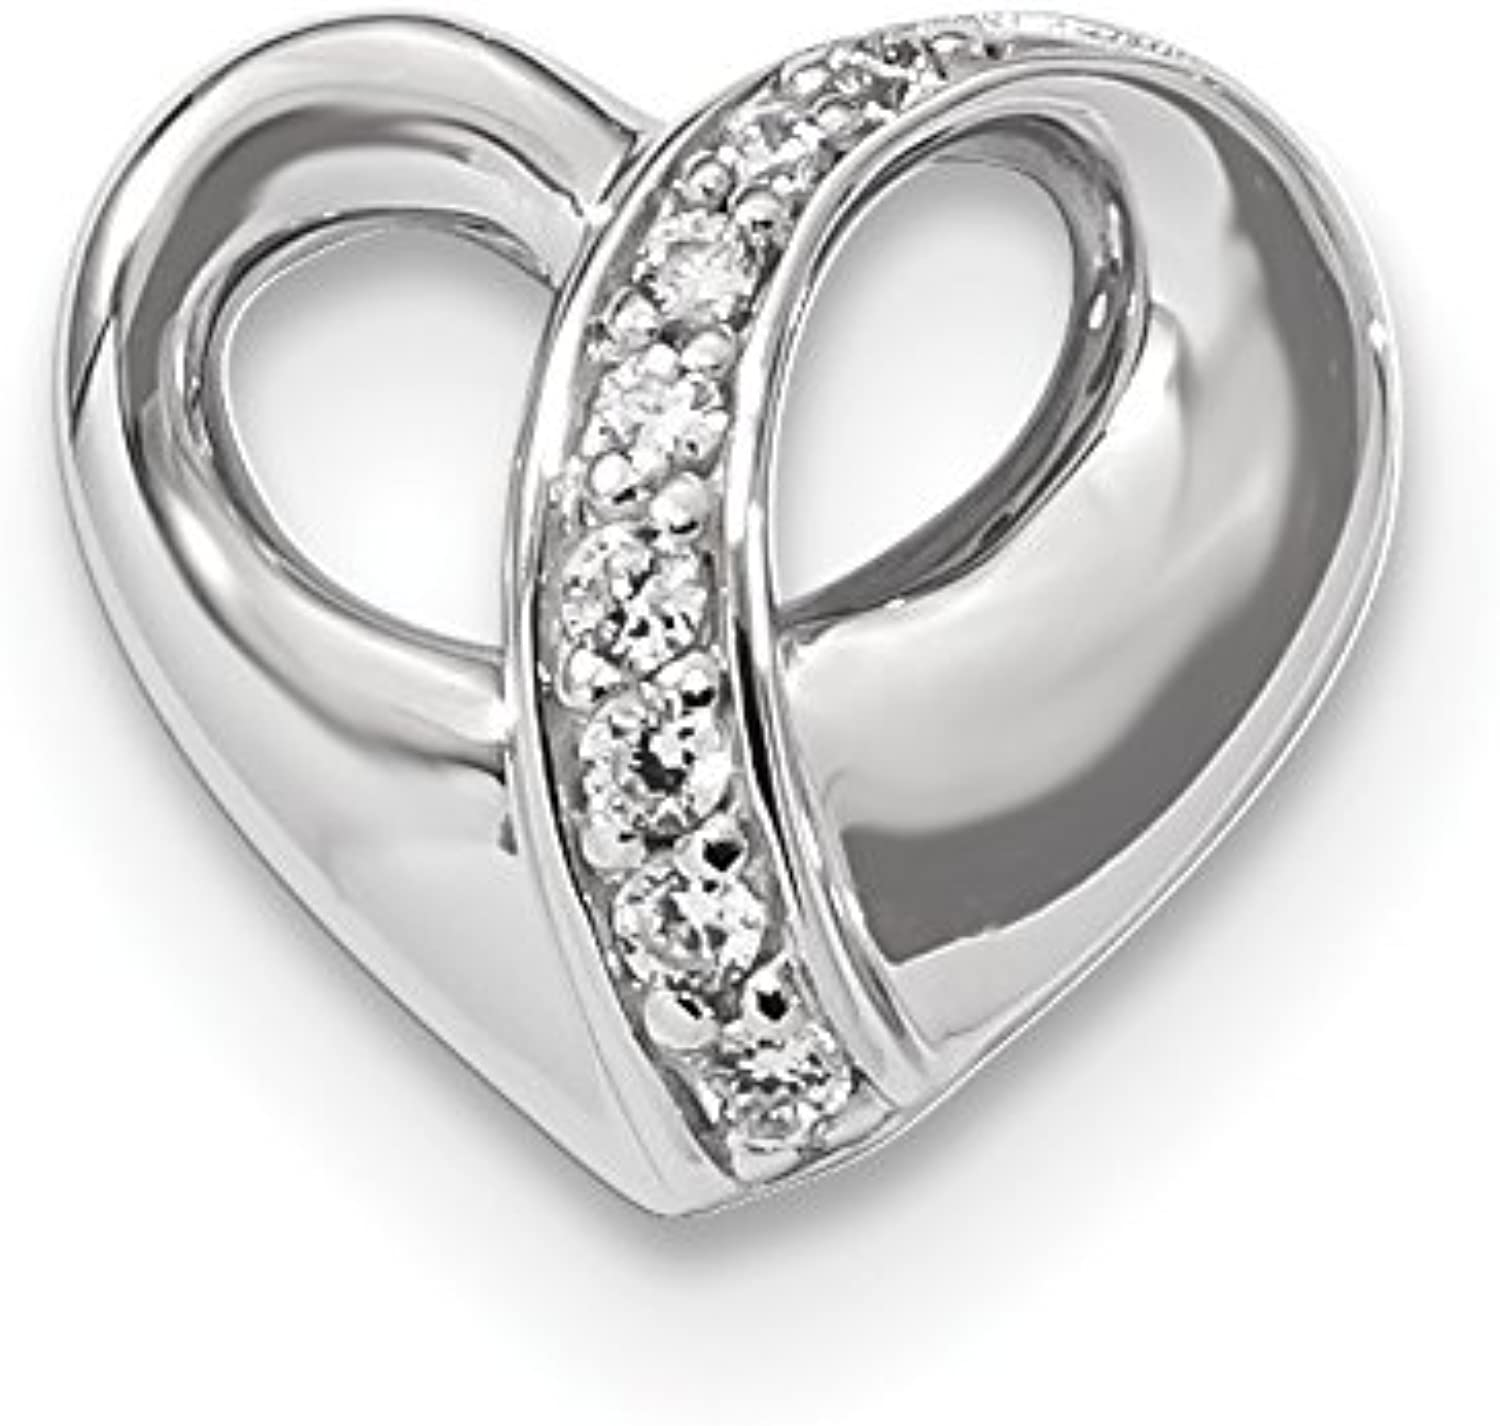 Diamond2Deal 925 Sterling Silver Rhodiumplated Polished CZ Heart Chain Slide Pendant